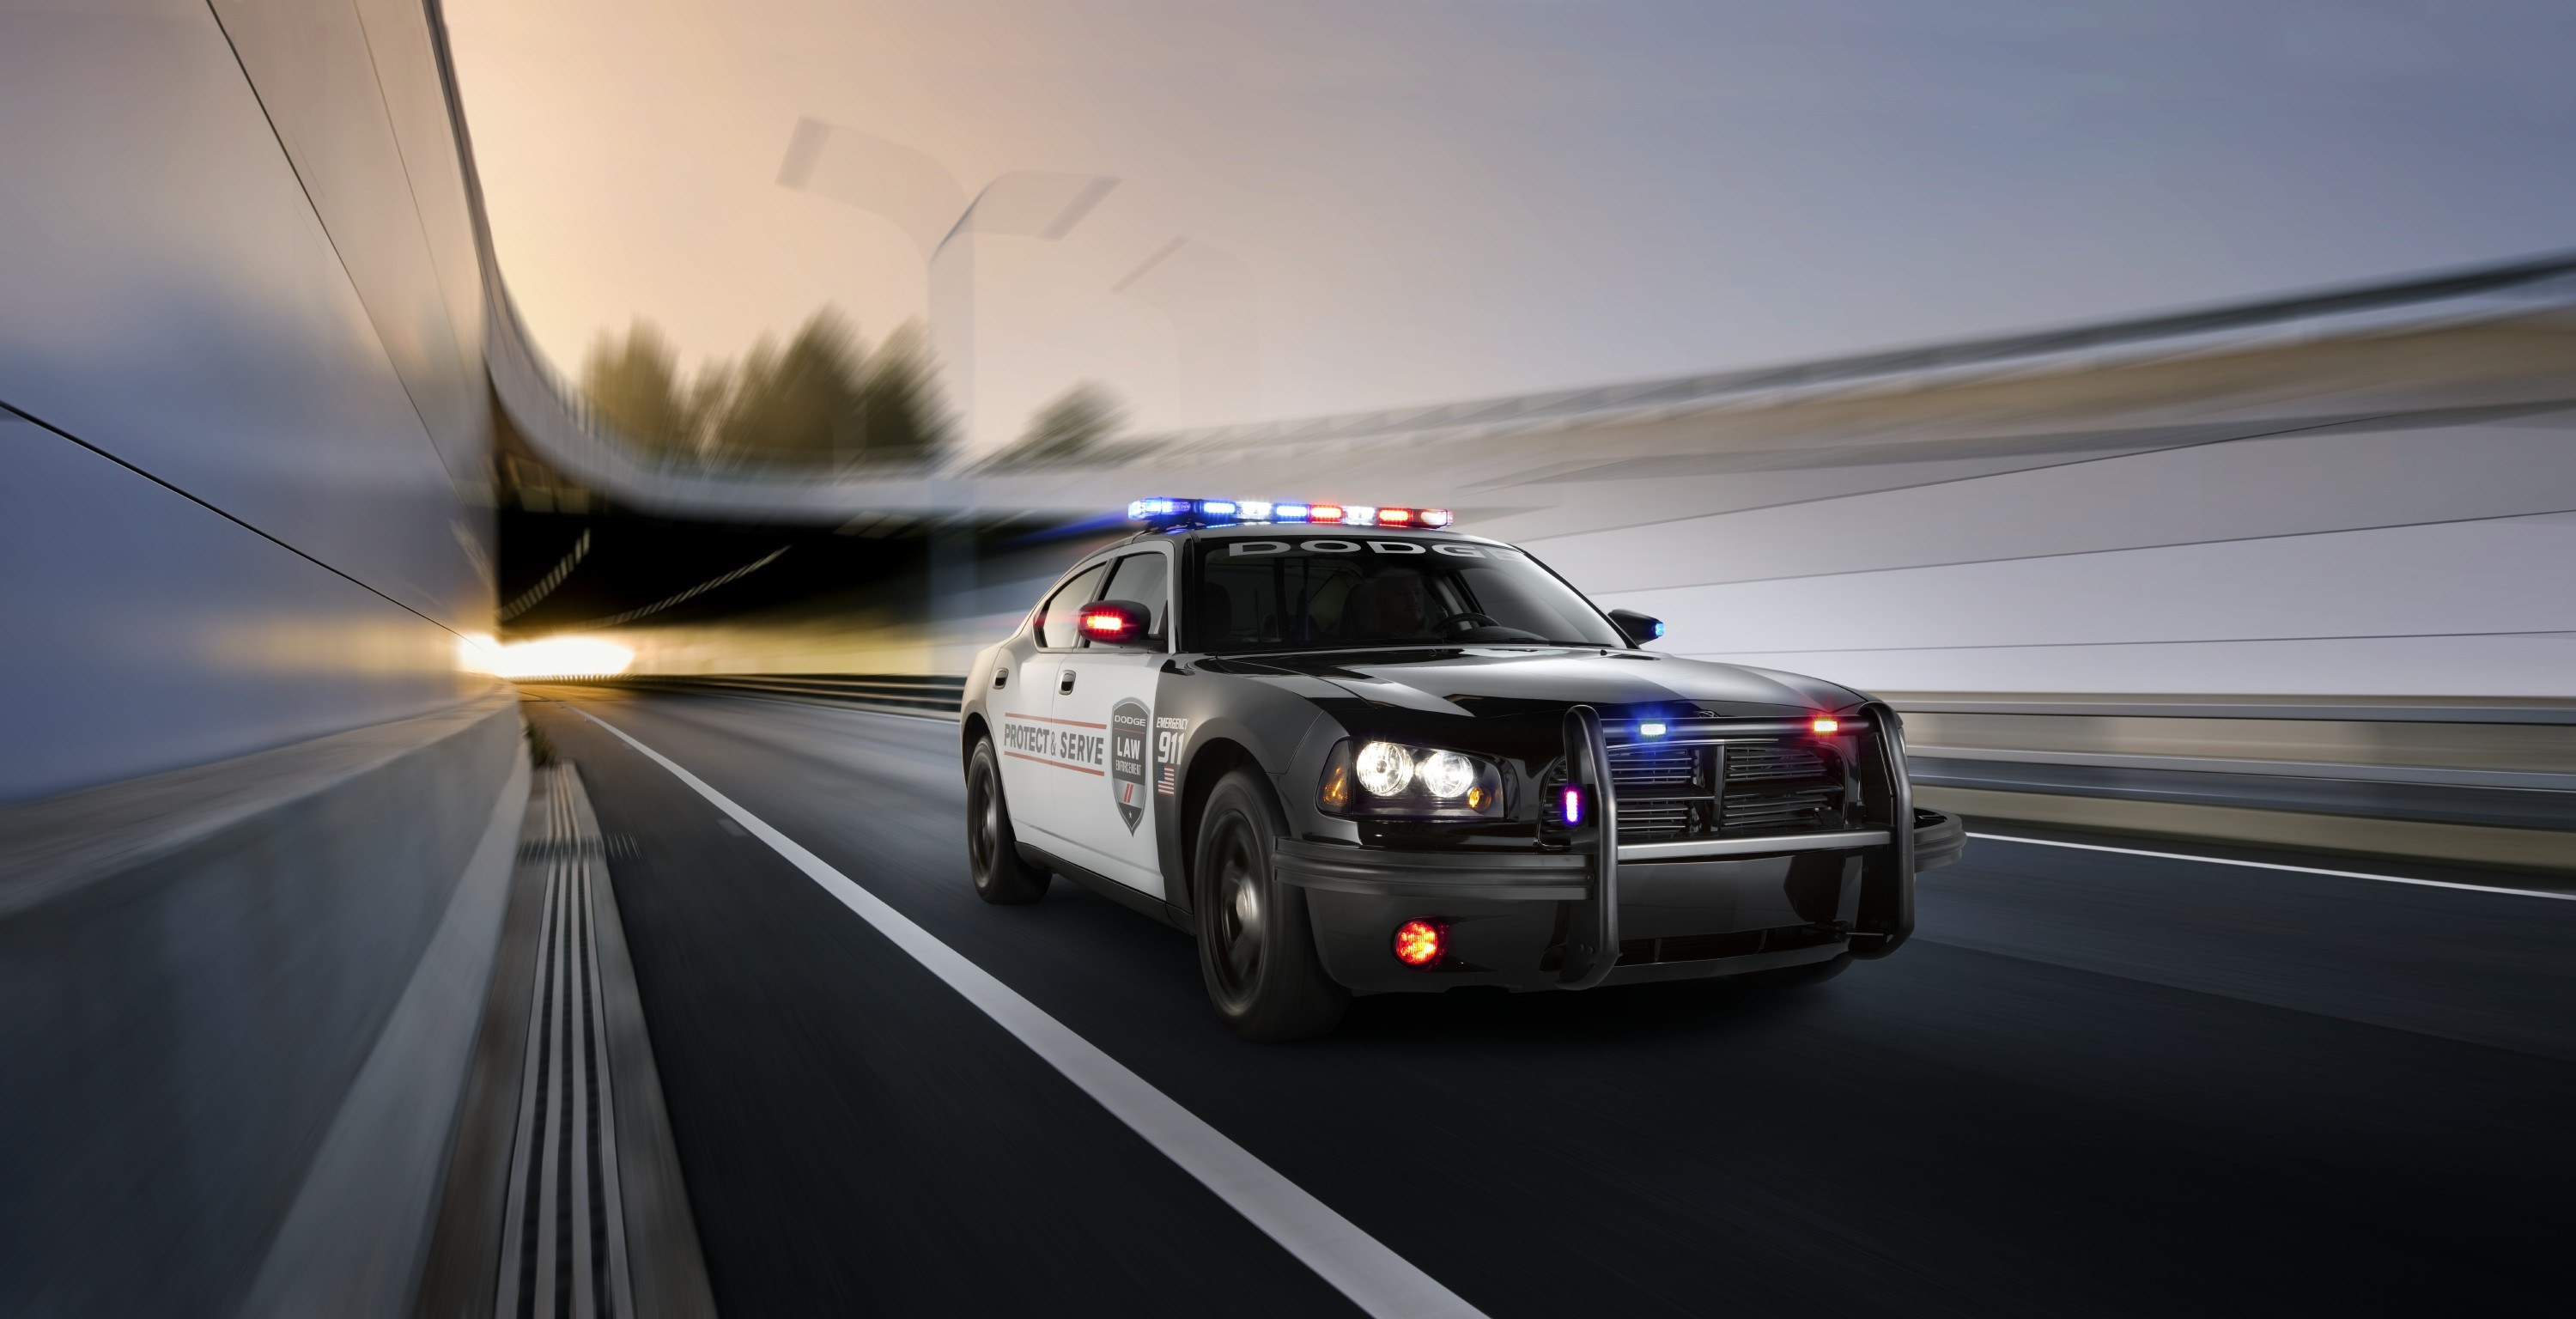 police Computer Wallpapers, Desktop Backgrounds | | ID .